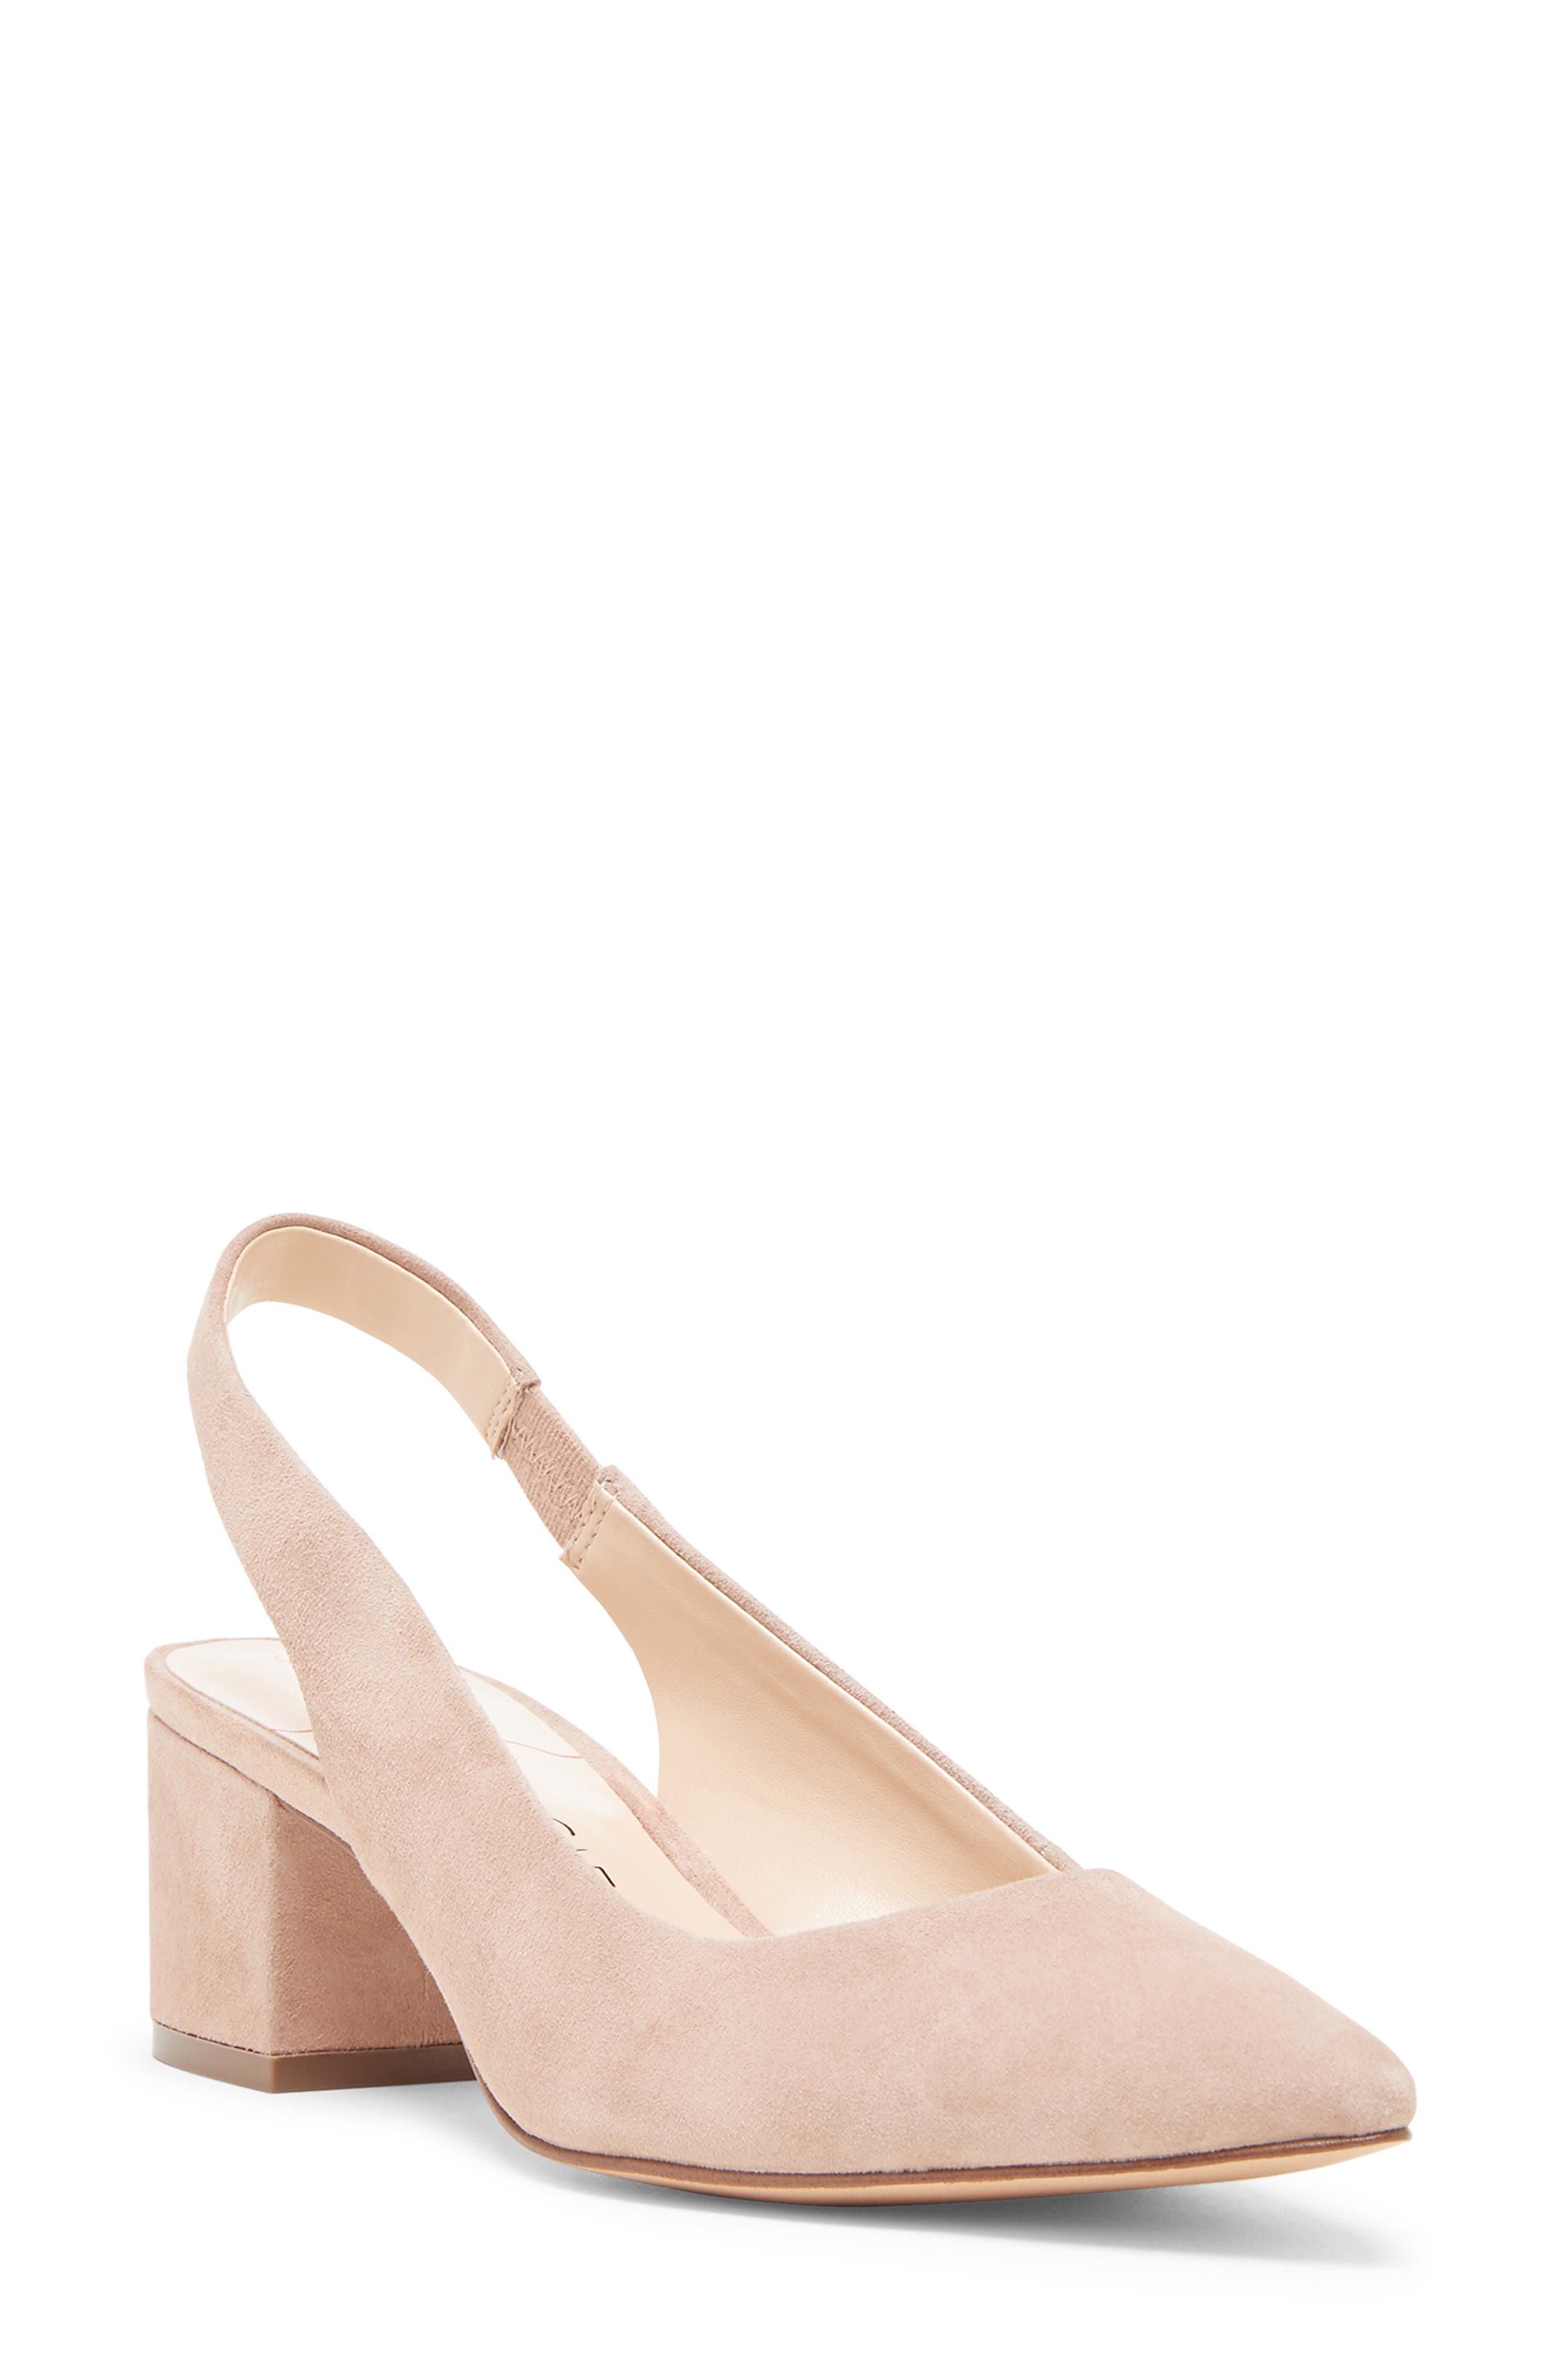 Keilinah Slingback Pointy Toe Pump, Main, color, DUSTY ROSE SUEDE